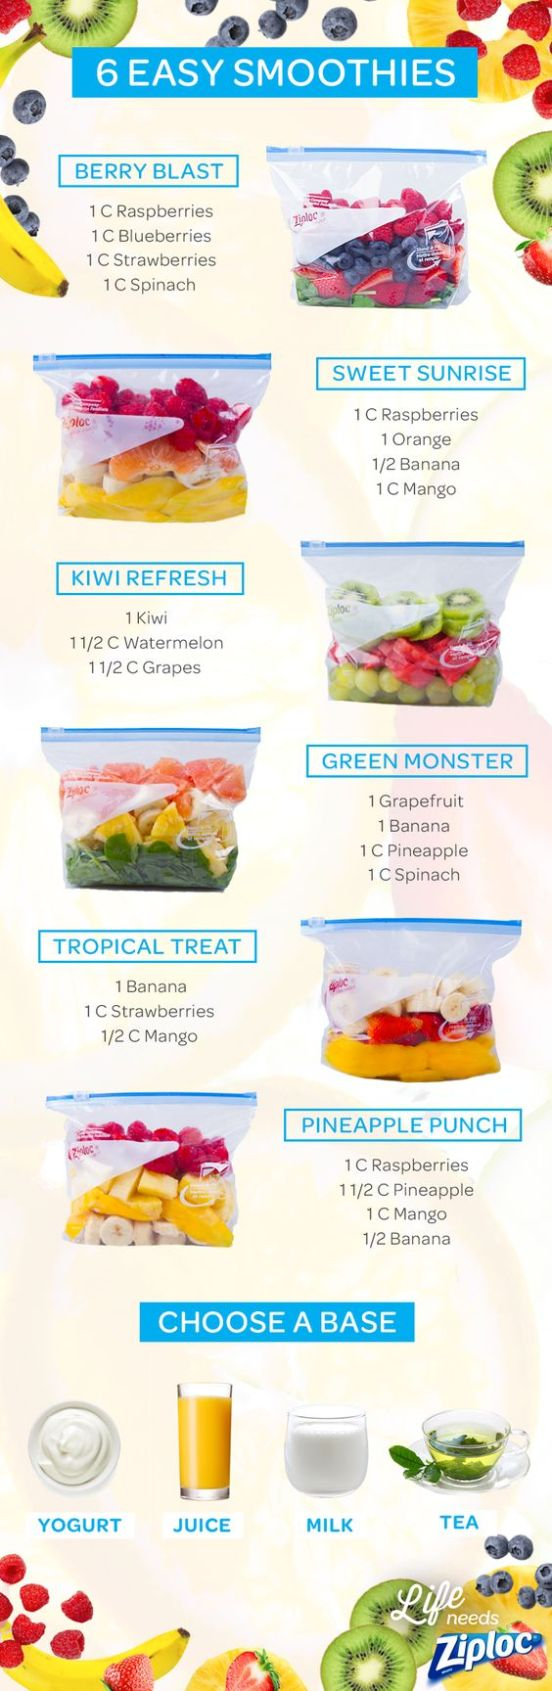 These easy smoothie recipes are perfect for post-workout!